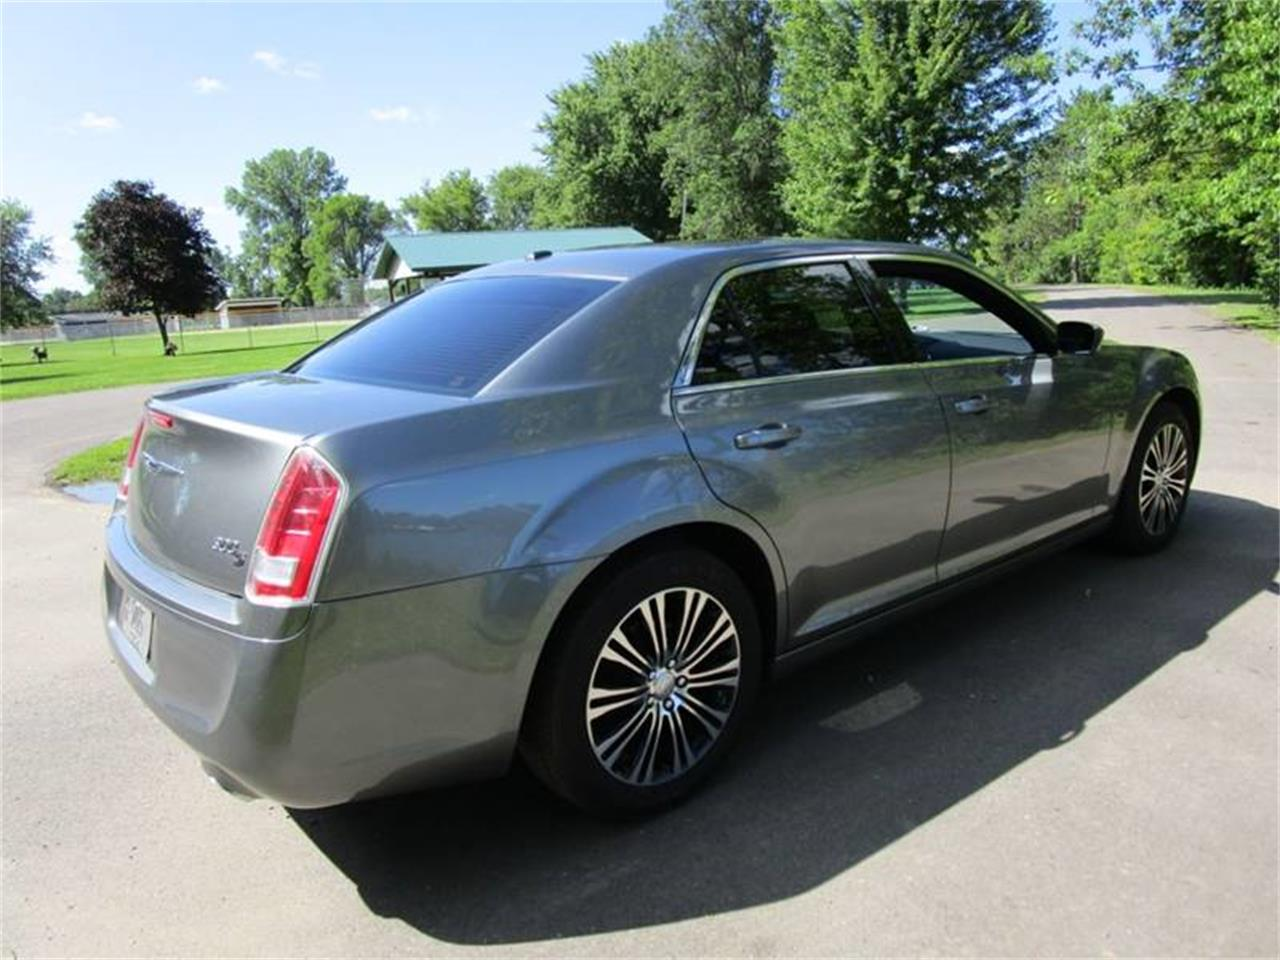 2012 Chrysler 300 for sale in Stanley, WI – photo 4